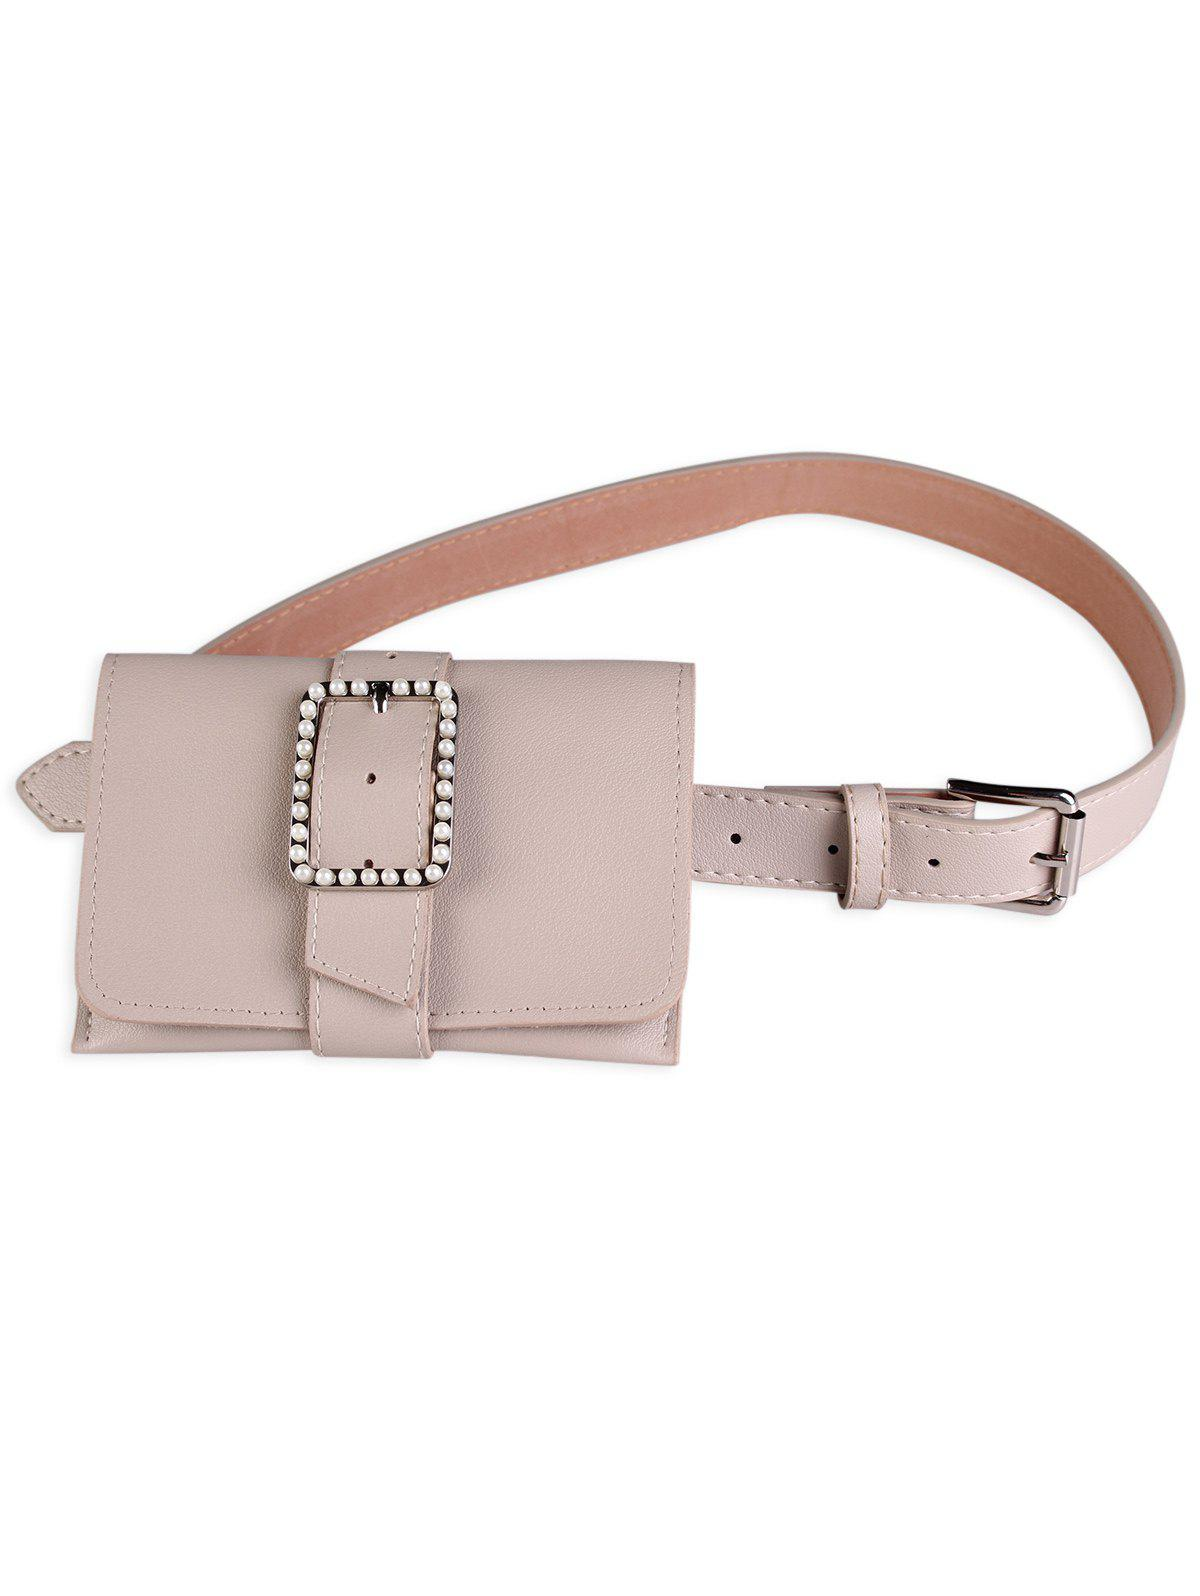 Faux Leather Belt Bag with Faux Pearl Decorated все цены